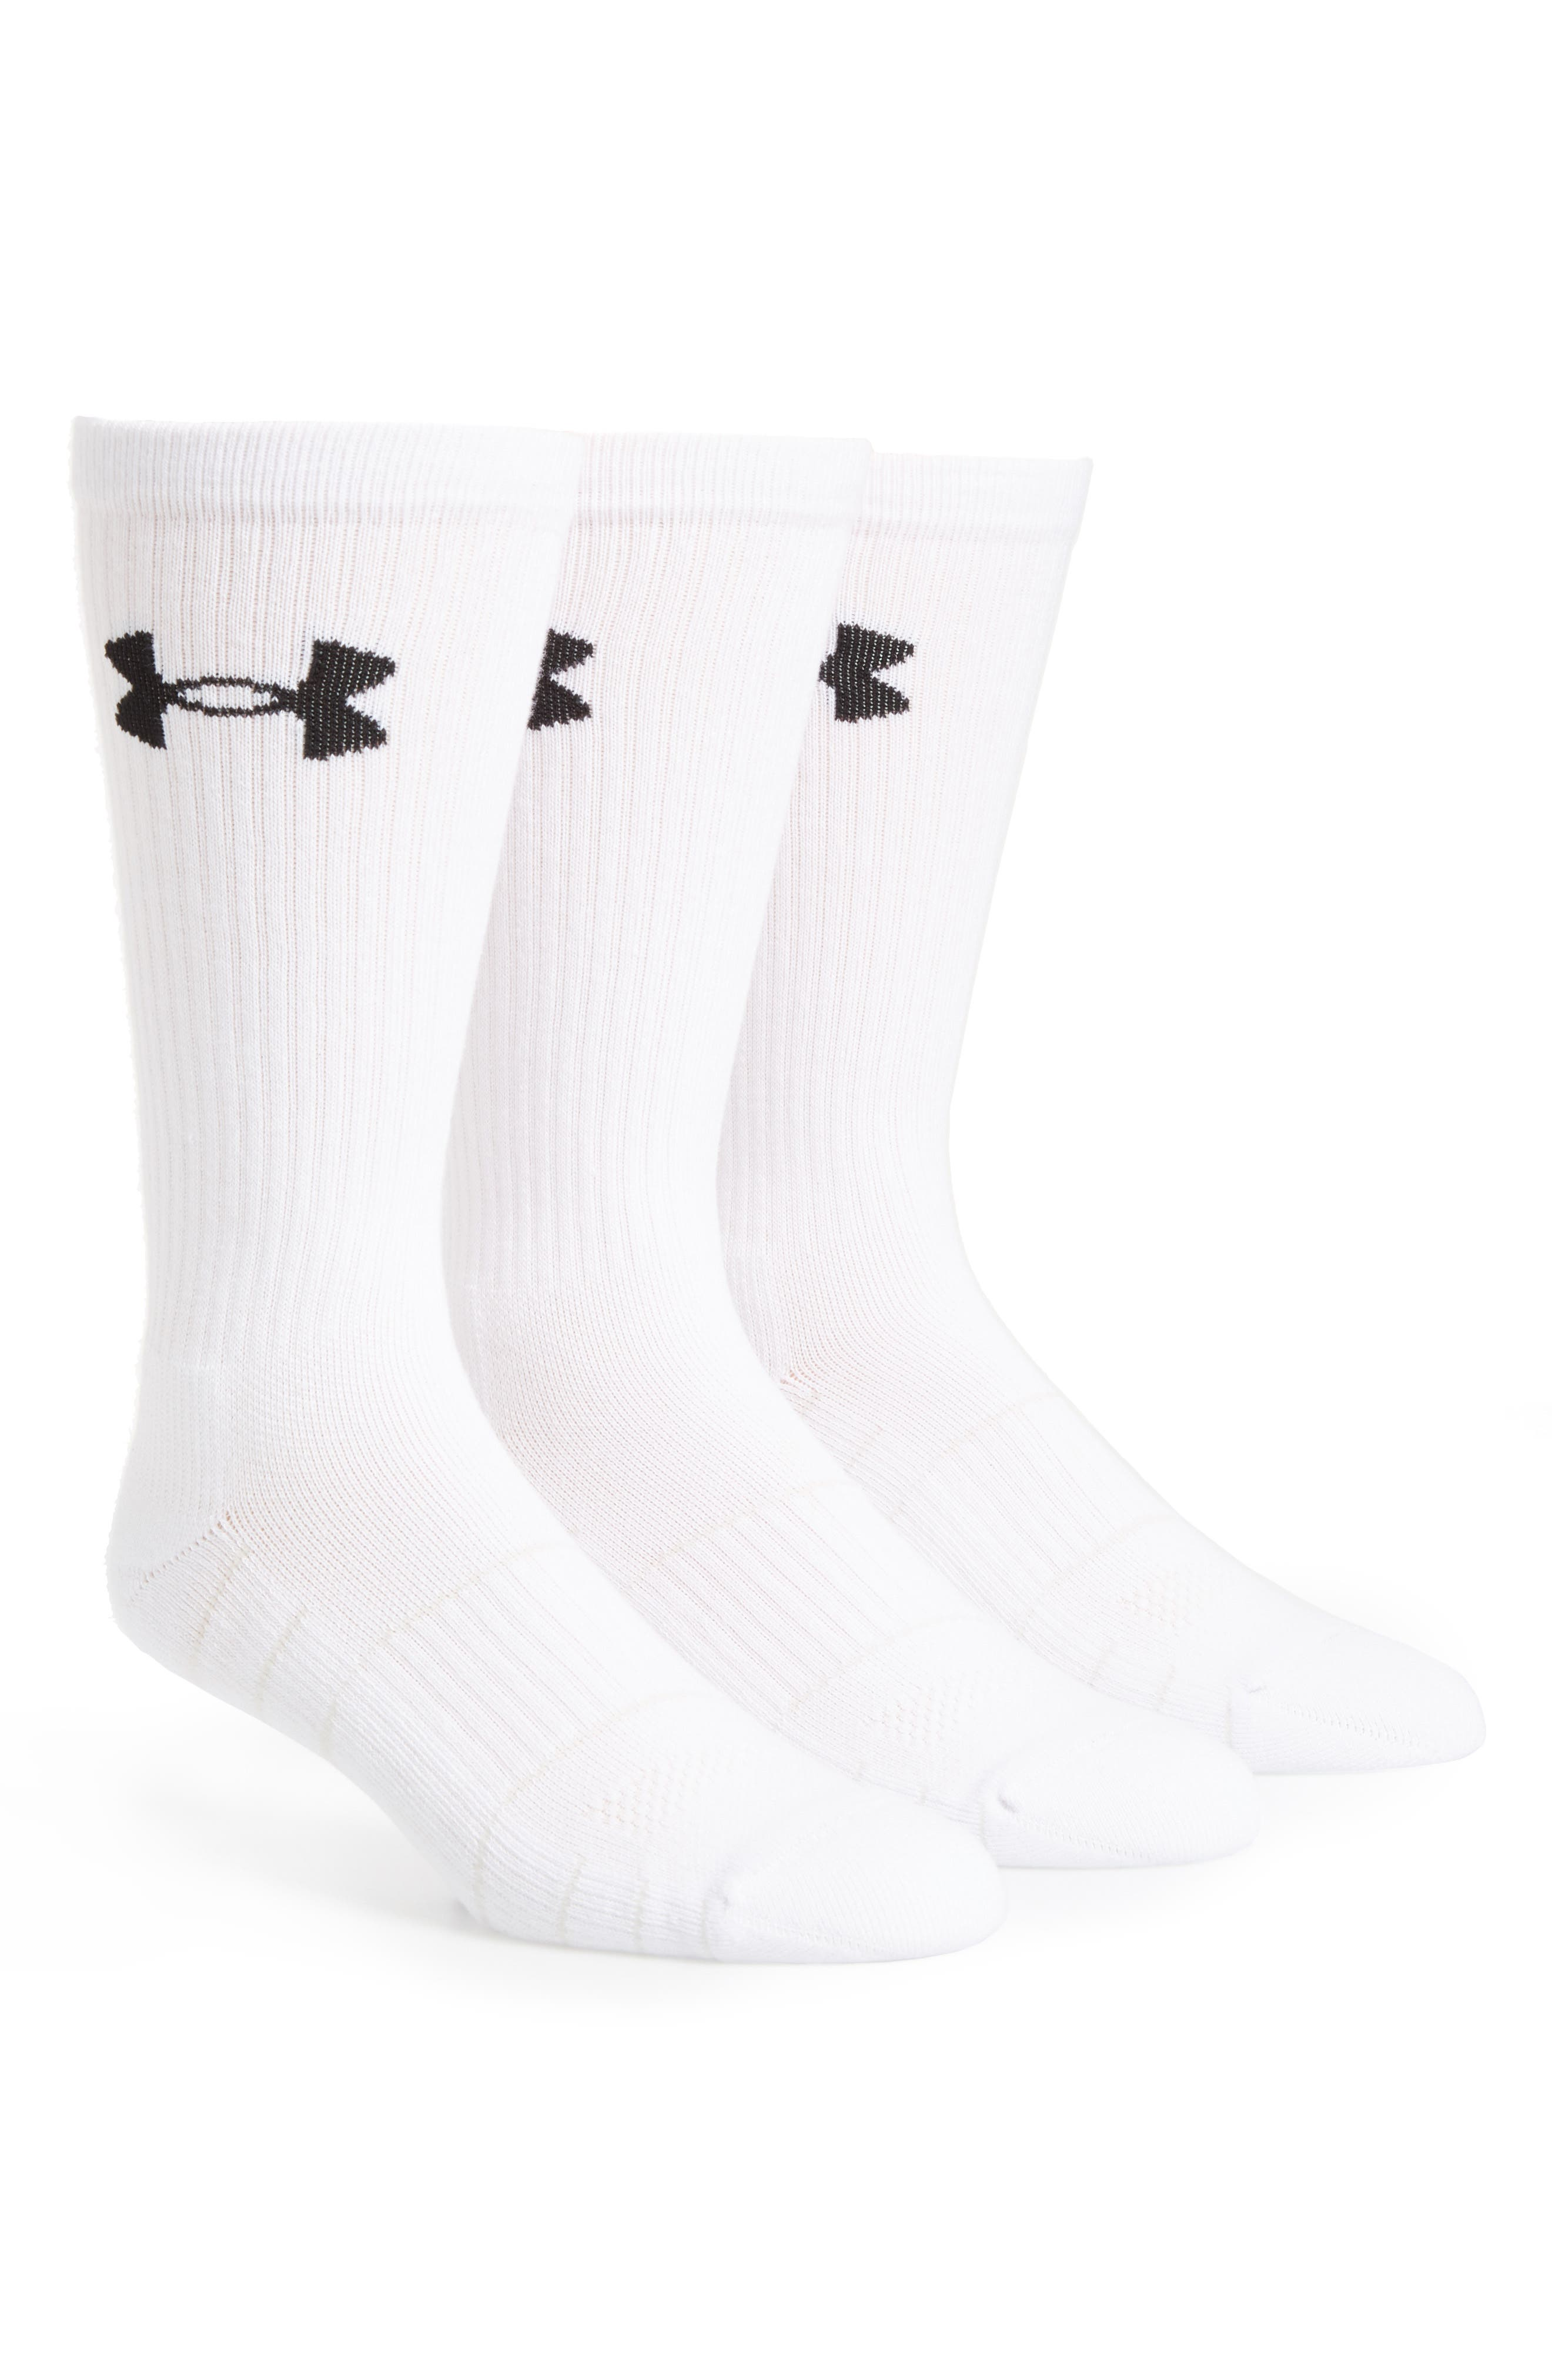 Main Image - Under Armour Elevated Performance 3-Pack Socks